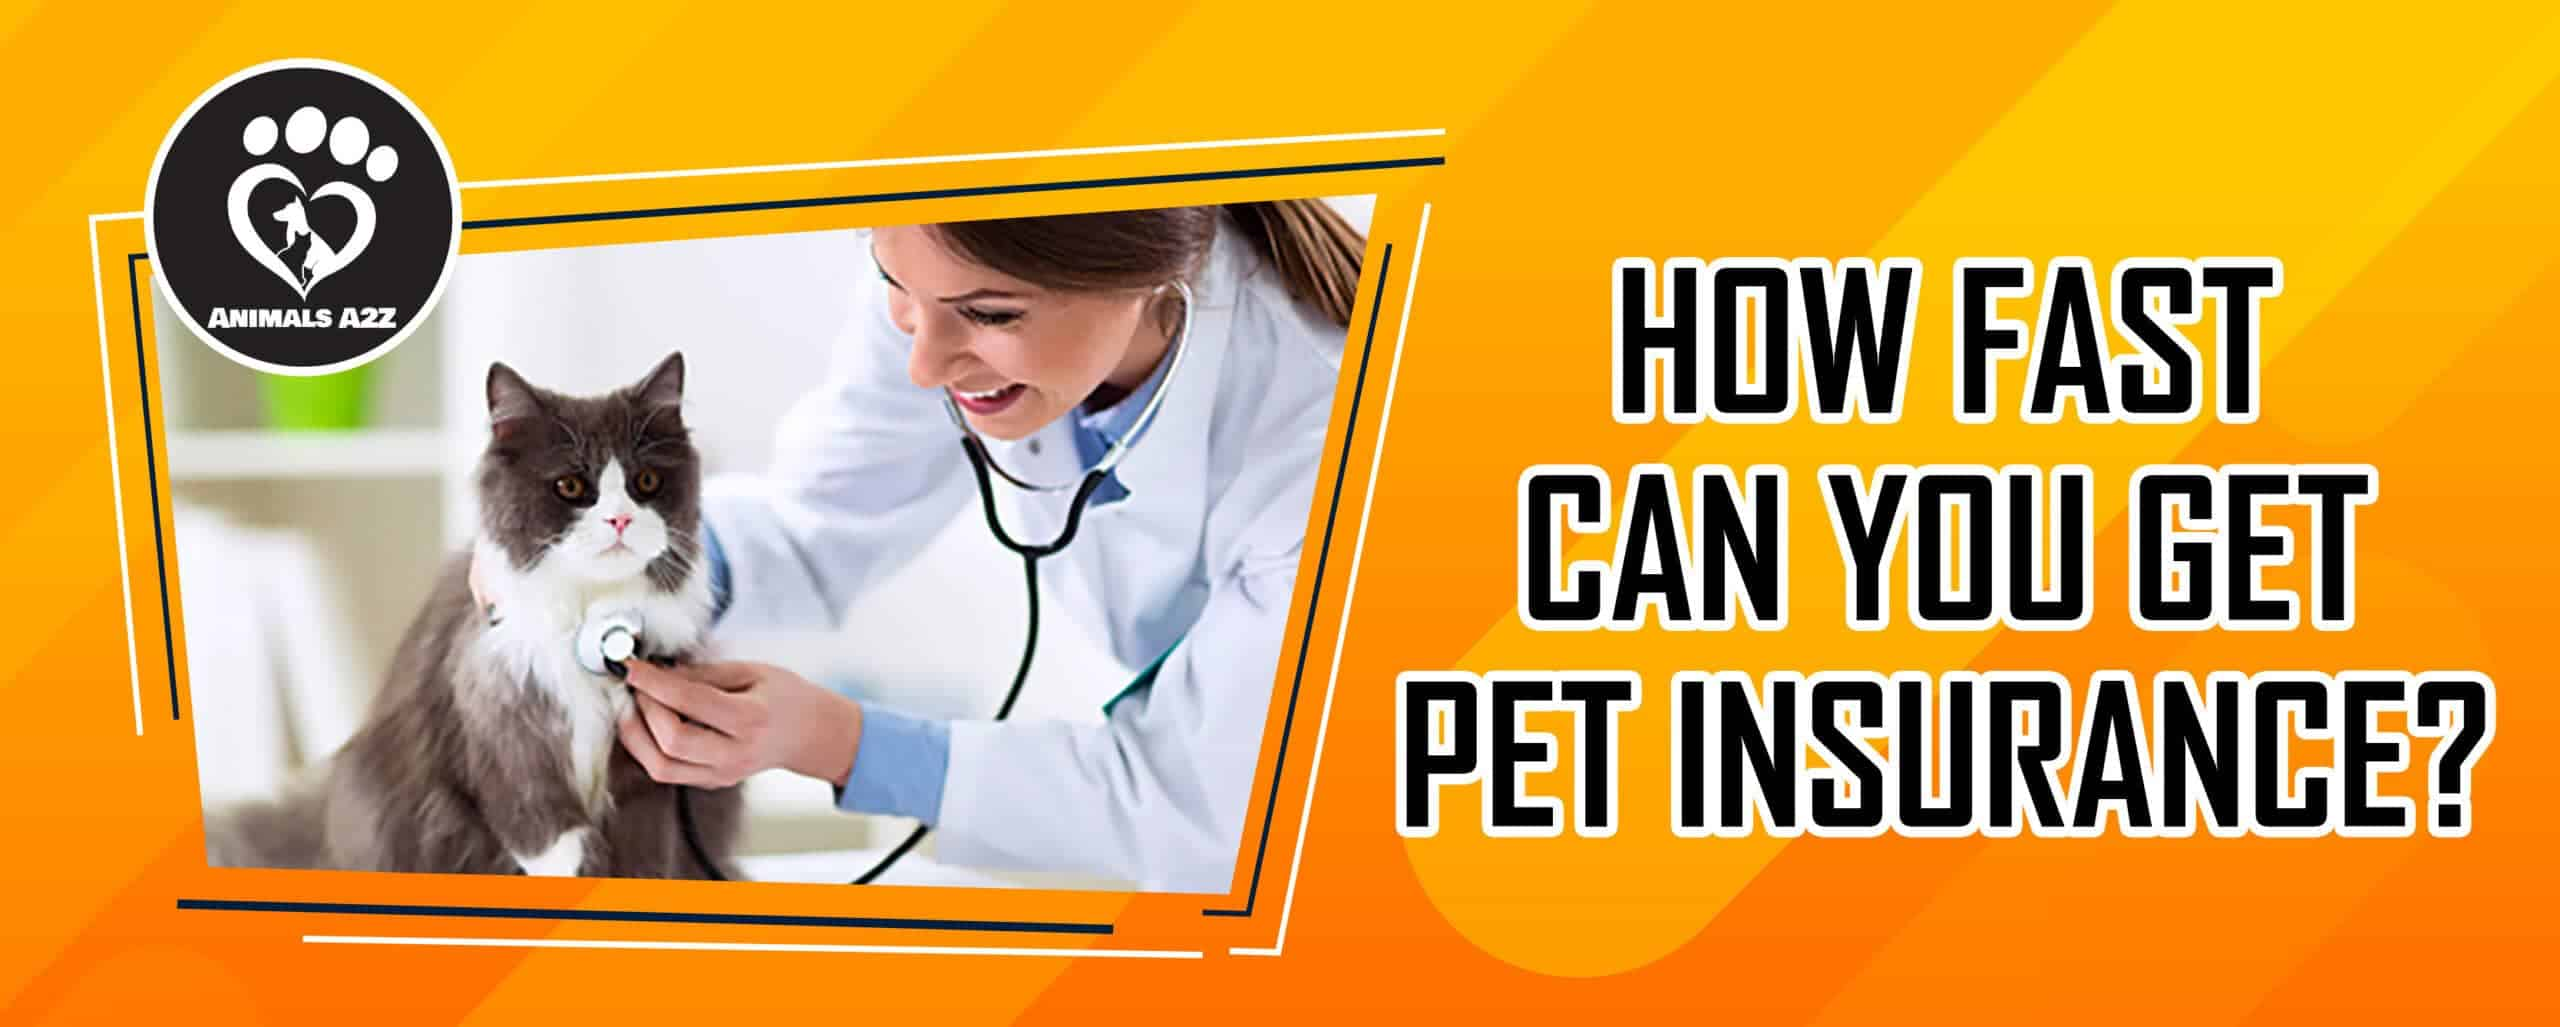 How fast can you get pet insurance?